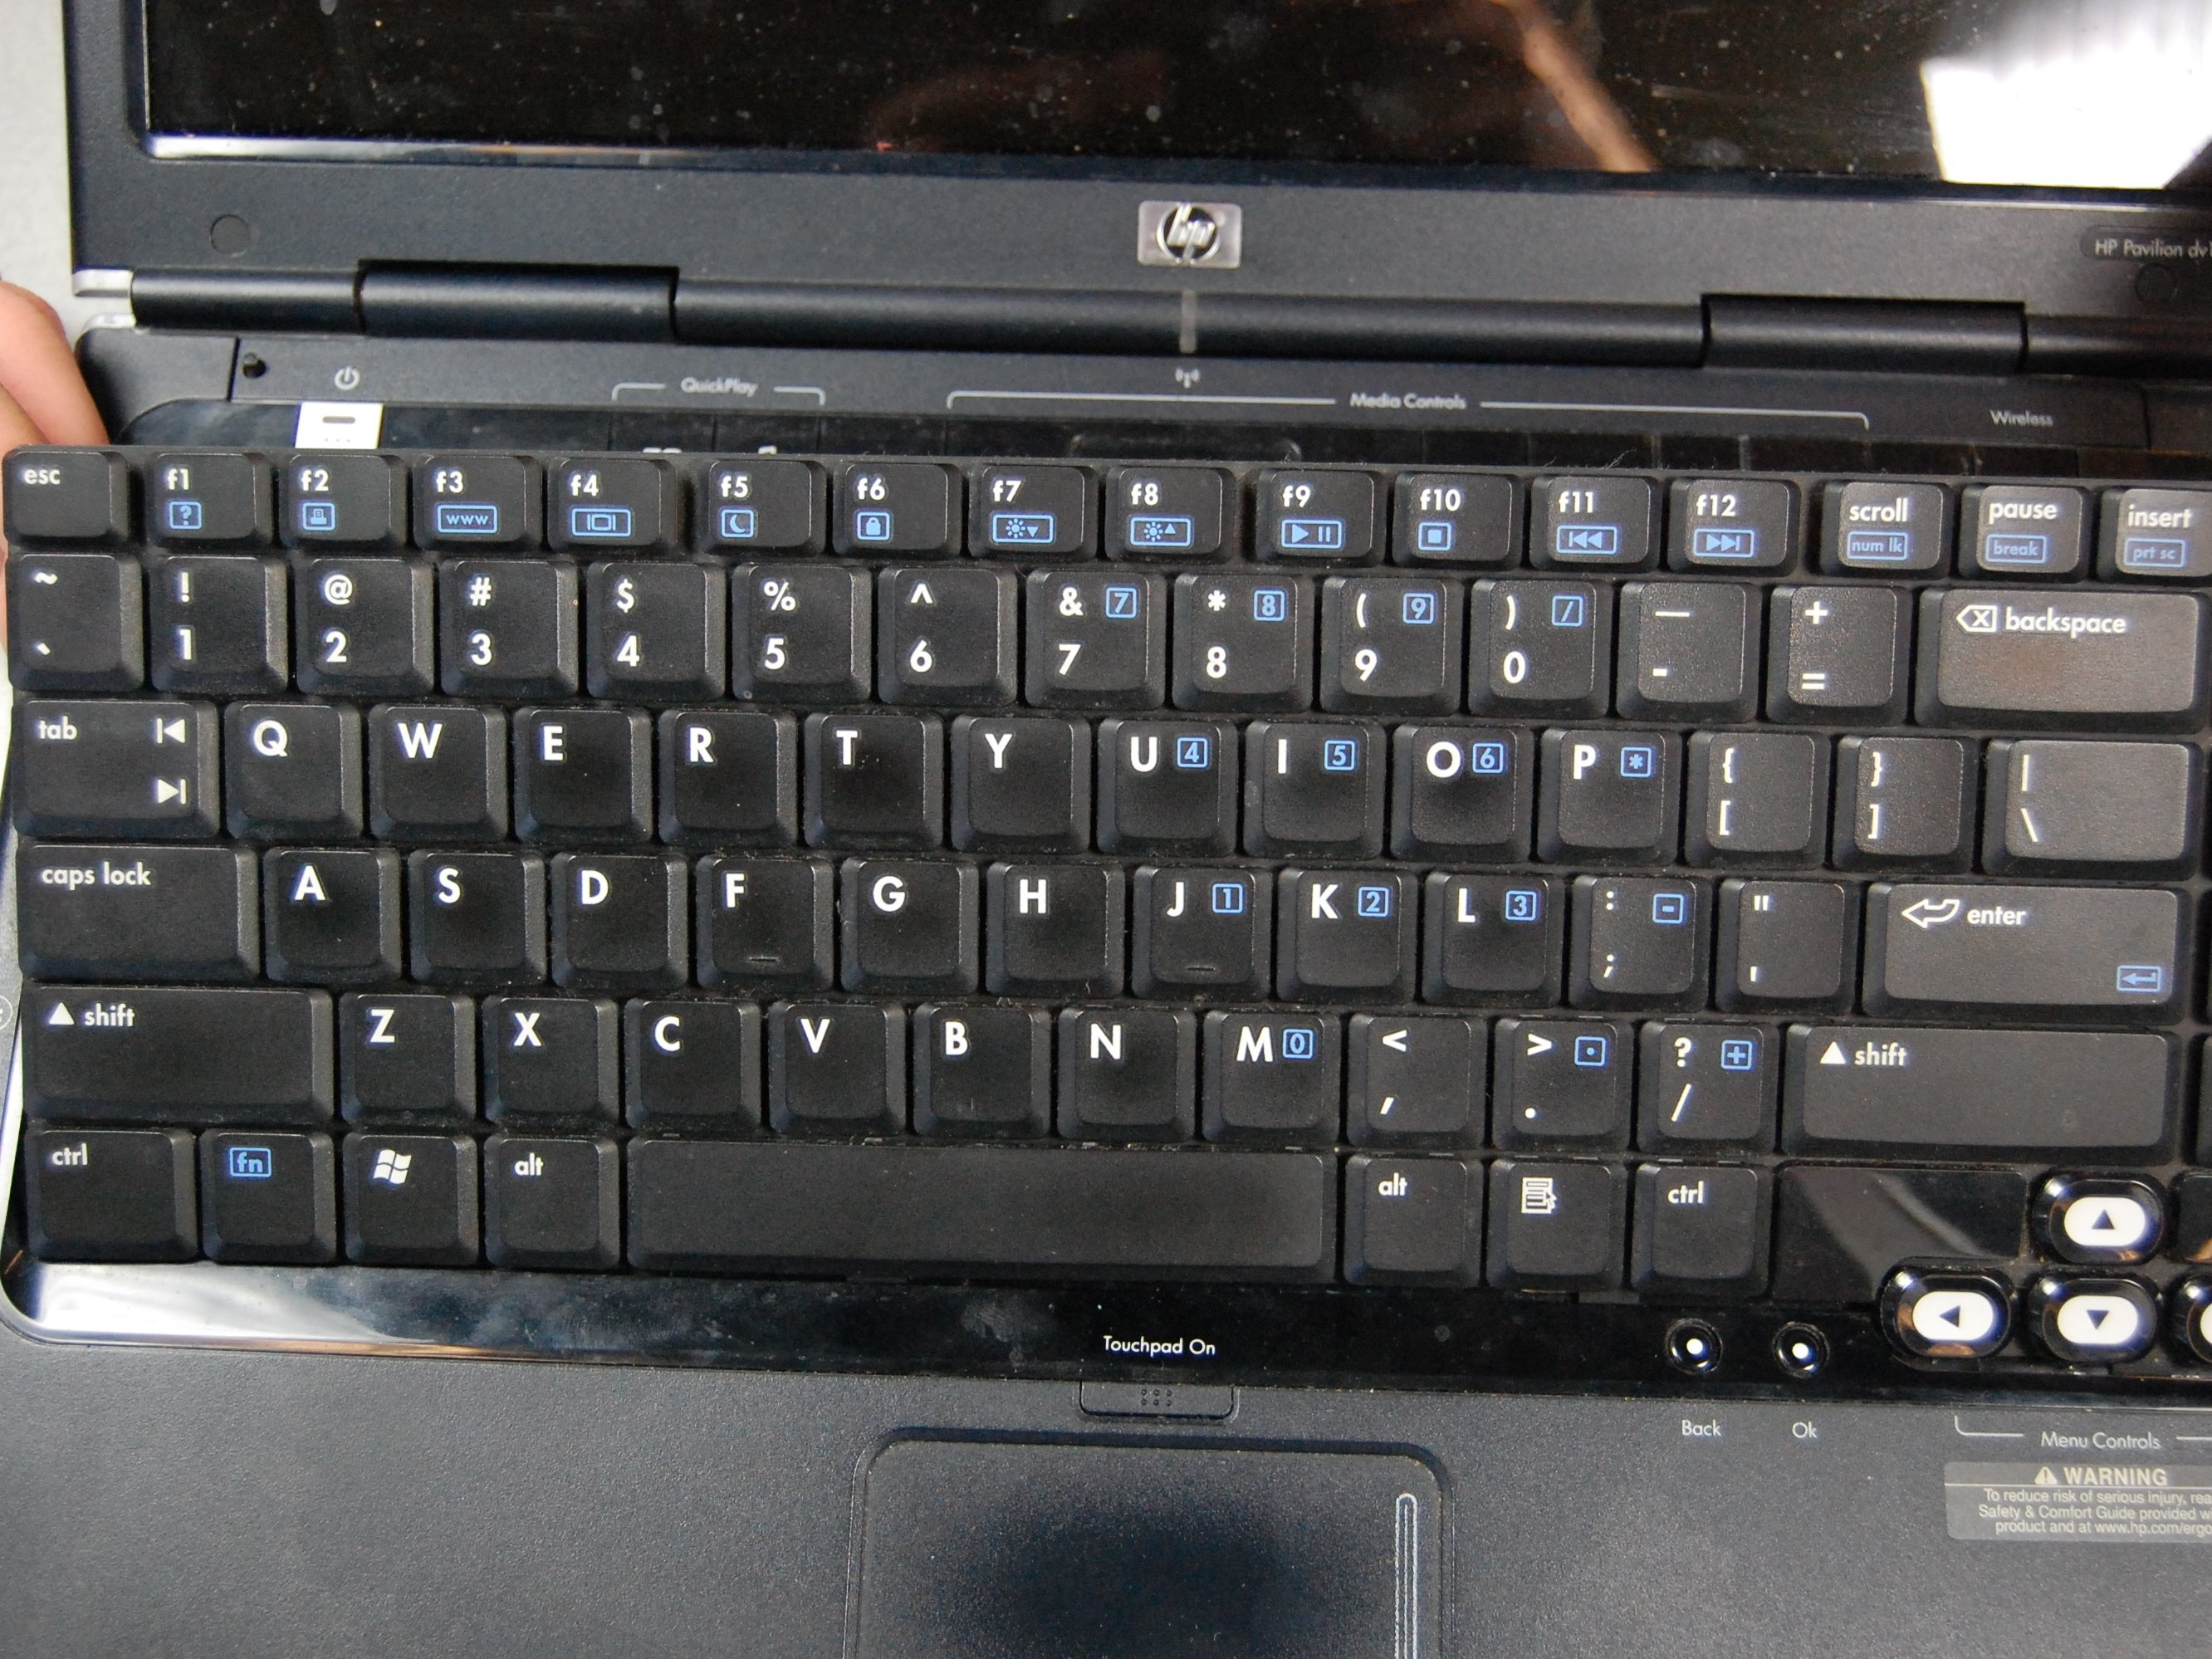 DOWNLOAD DRIVERS: HP PAVILION DV1000 KEYBOARD